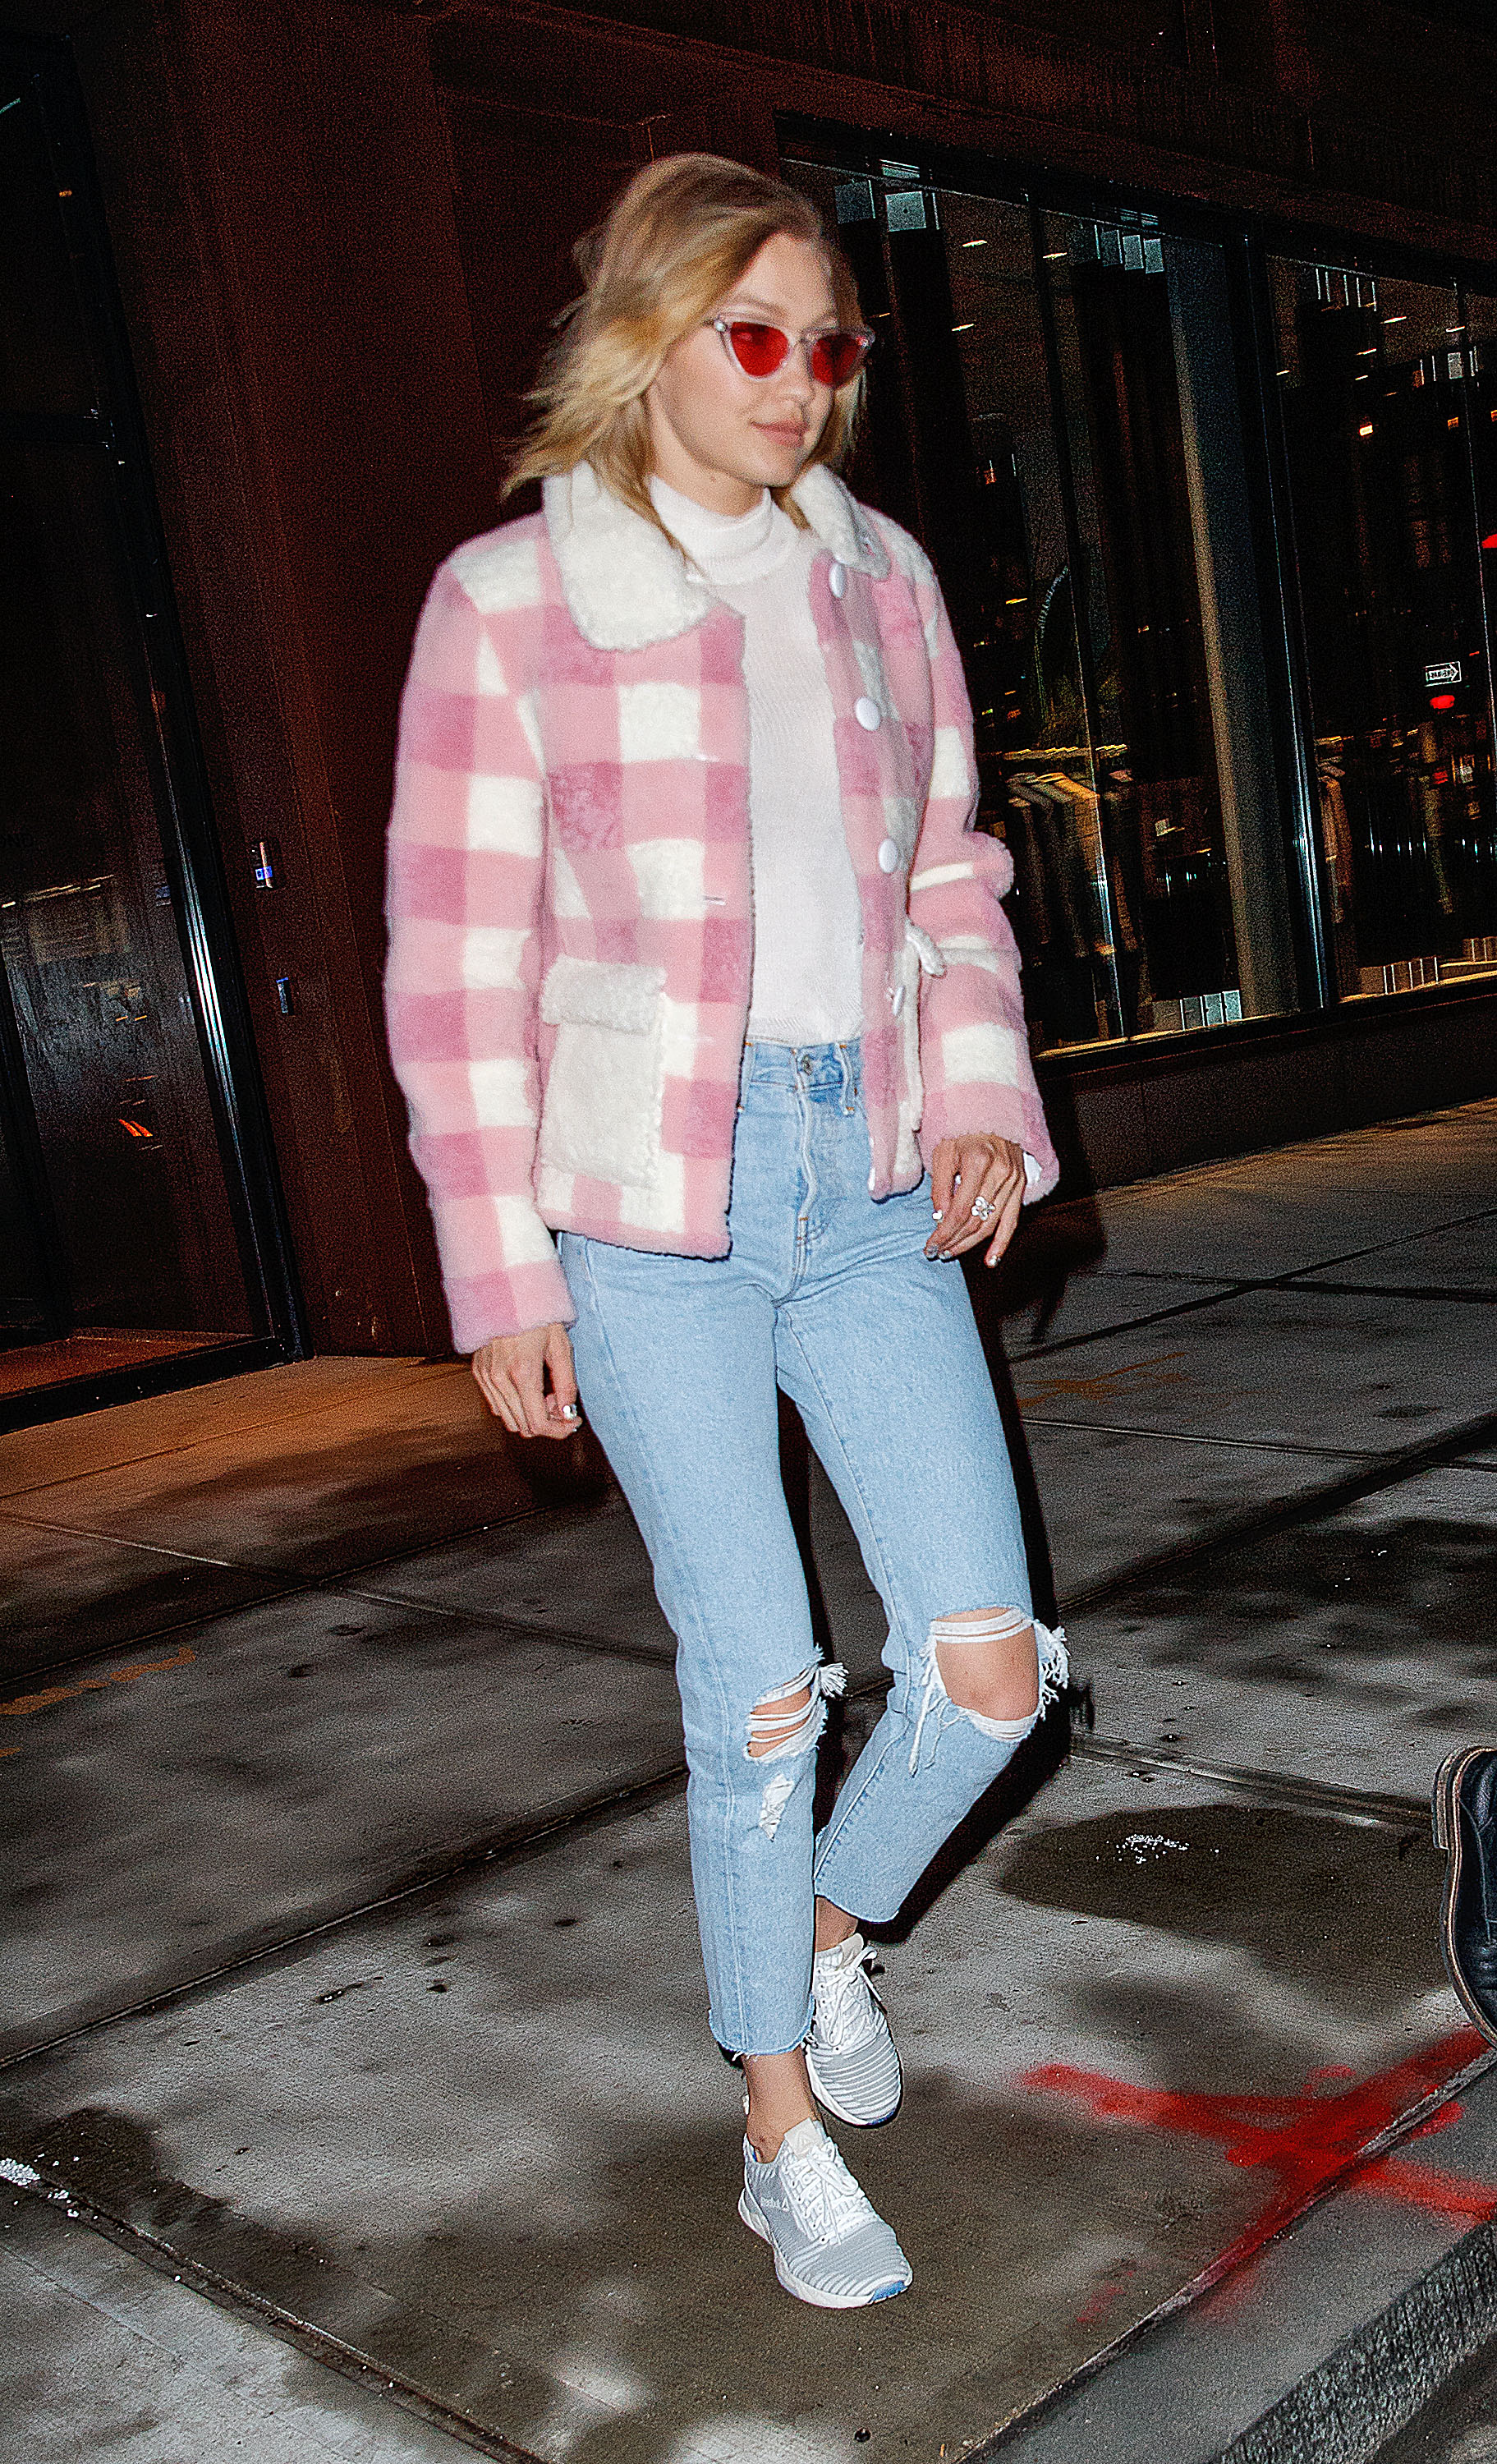 EXCLUSIVE: Gigi Hadid wears a furry pink jacket paired with denim jeans when out and about in New York <P> Pictured: Gigi Hadid <B>Ref: SPL1638461  171217   EXCLUSIVE</B><BR/> Picture by: Jackson Lee / Splash News<BR/> </P><P> <B>Splash News and Pictures</B><BR/> Los Angeles:310-821-2666<BR/> New York:212-619-2666<BR/> London:870-934-2666<BR/> <span id=